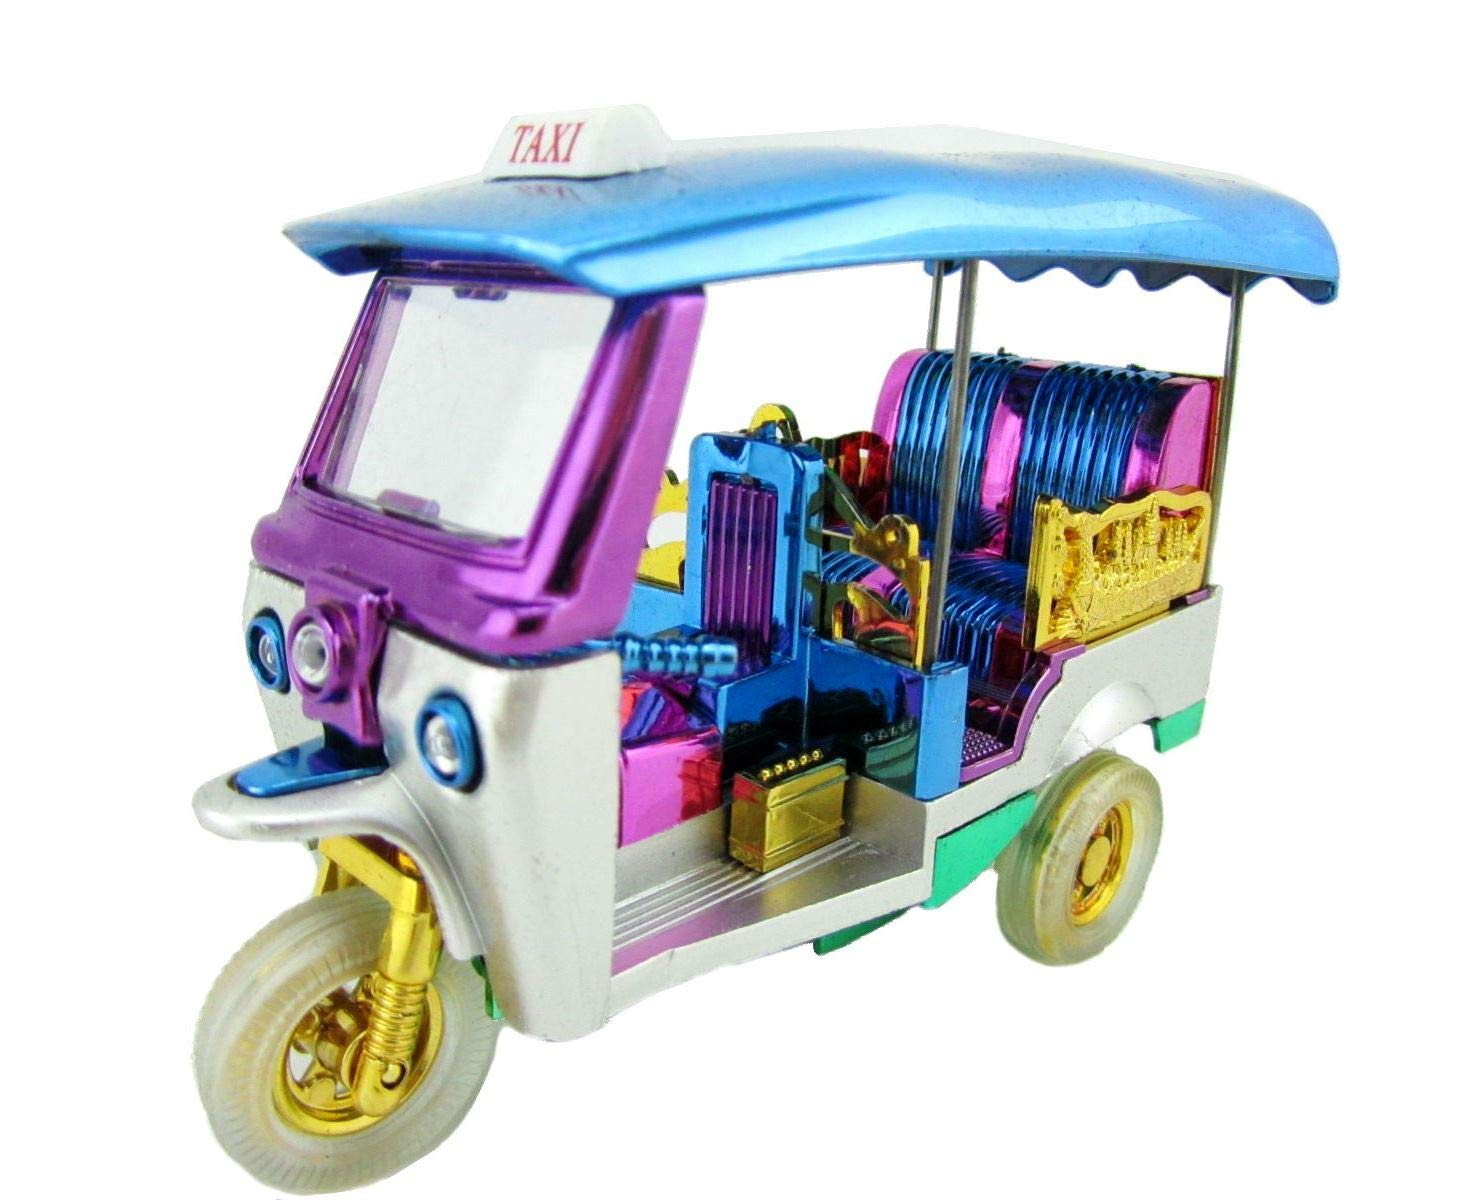 Thai Tuk Tuk Thailand Model Taxi Tricycle Wind Up Wheels Car Toy Vehicle Collectible (Blue)